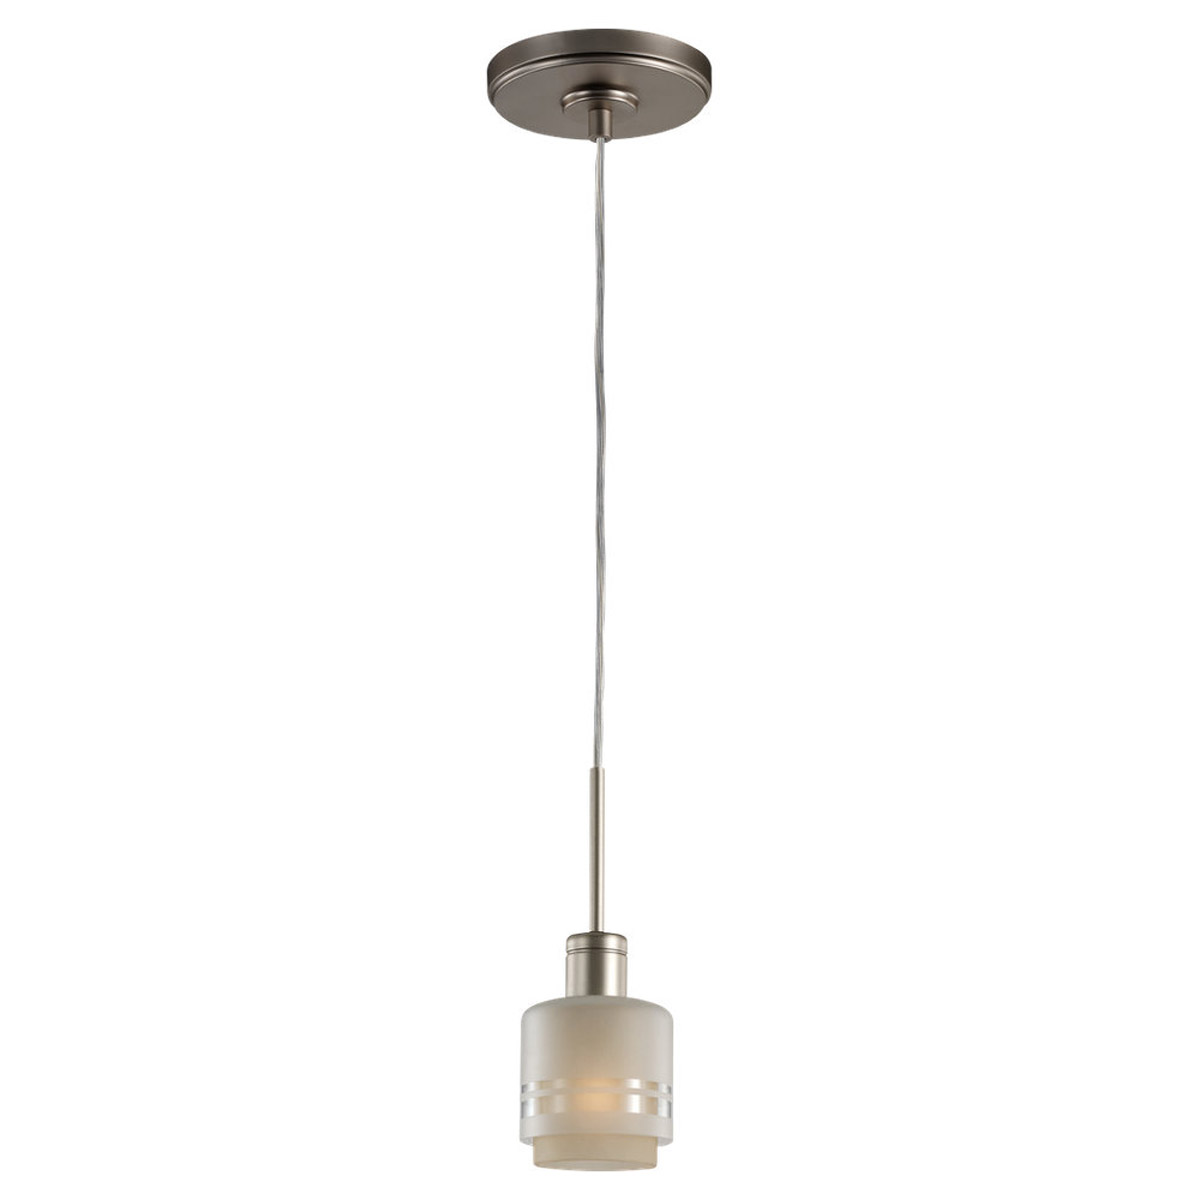 Sea Gull Lighting Groove 1 Light Pendant in Golden Pewter 61729-853 photo